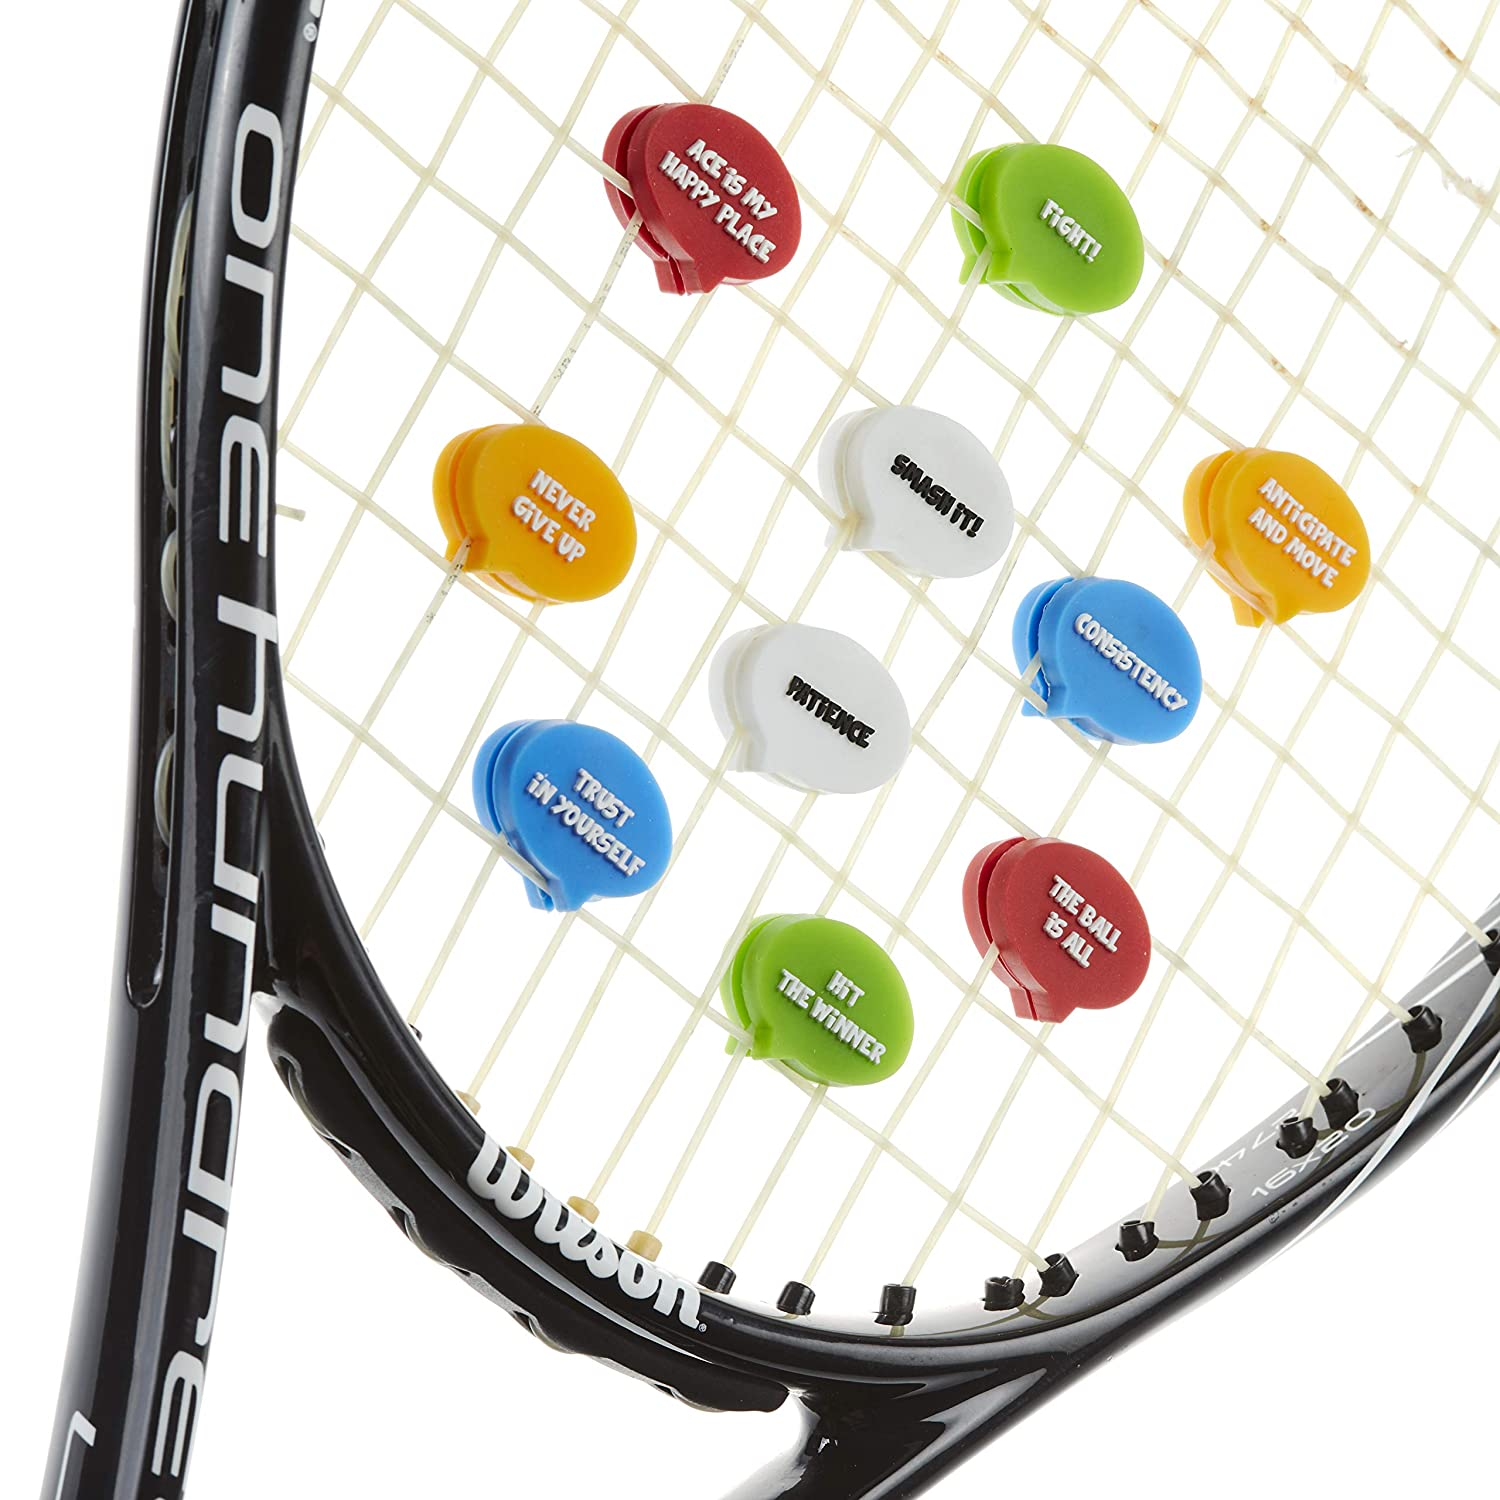 BusyBee Tennis Vibration Dampener (10 Pack). Unique Tennis Gift for Kids, Women and Players with 10 Motivational Slogans